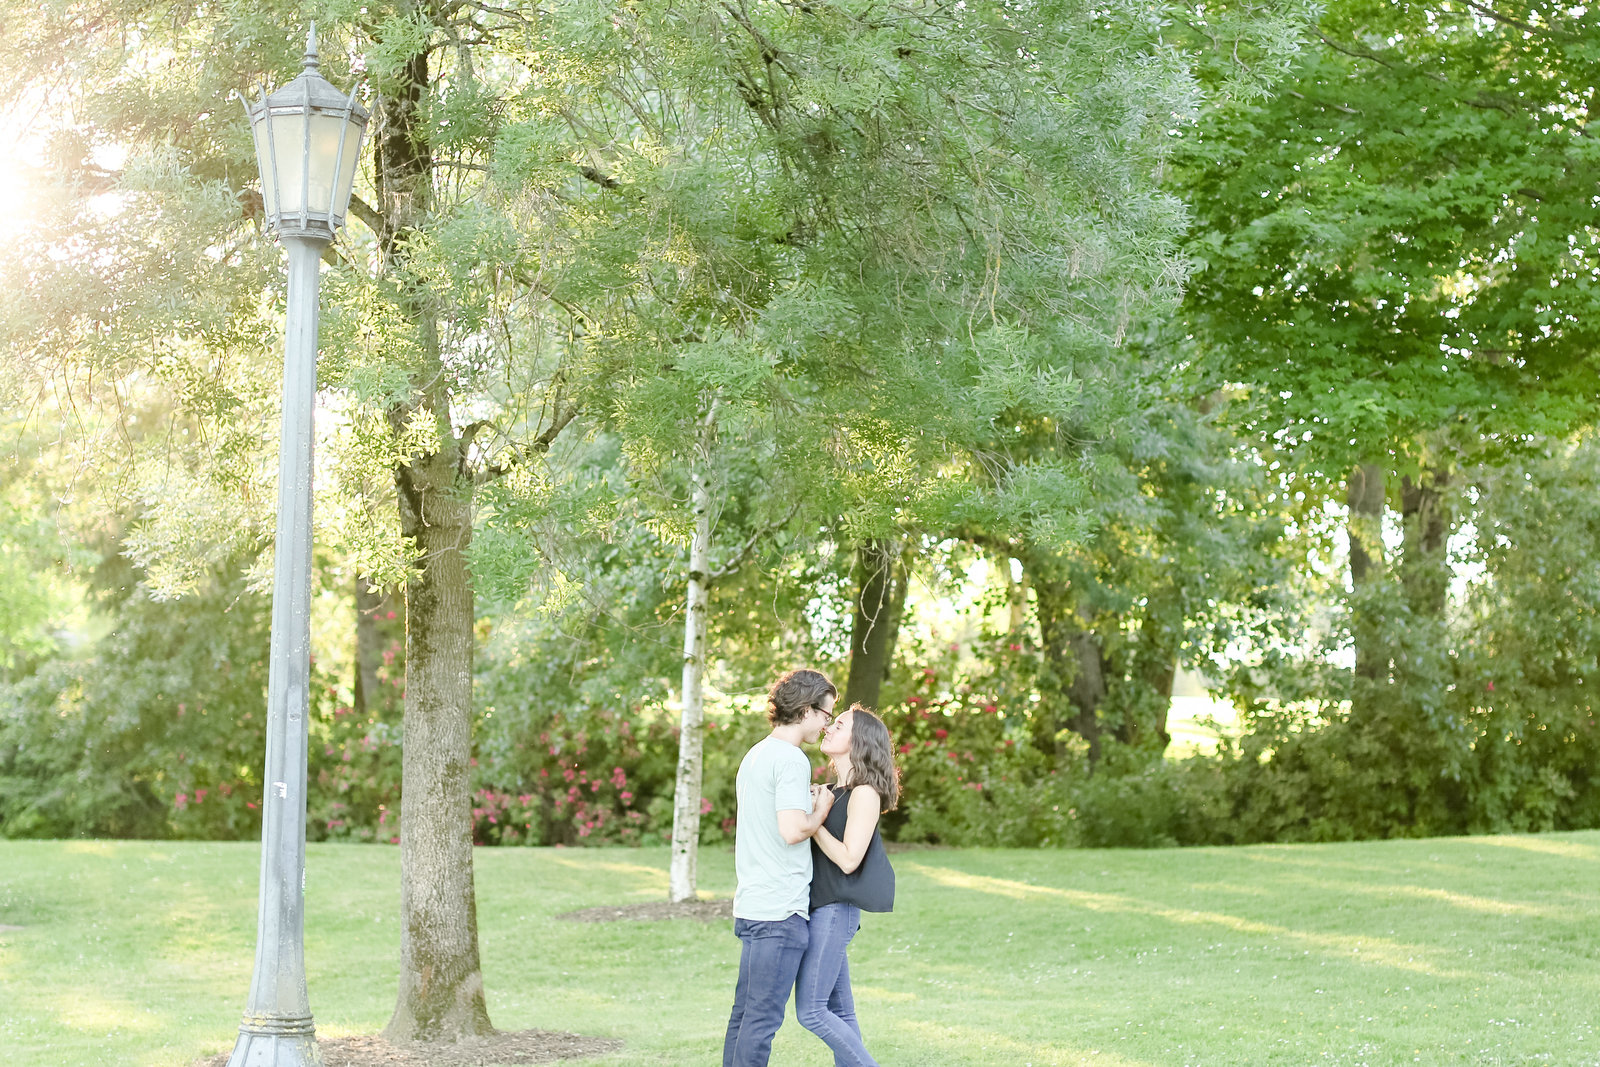 Couple kissing at park